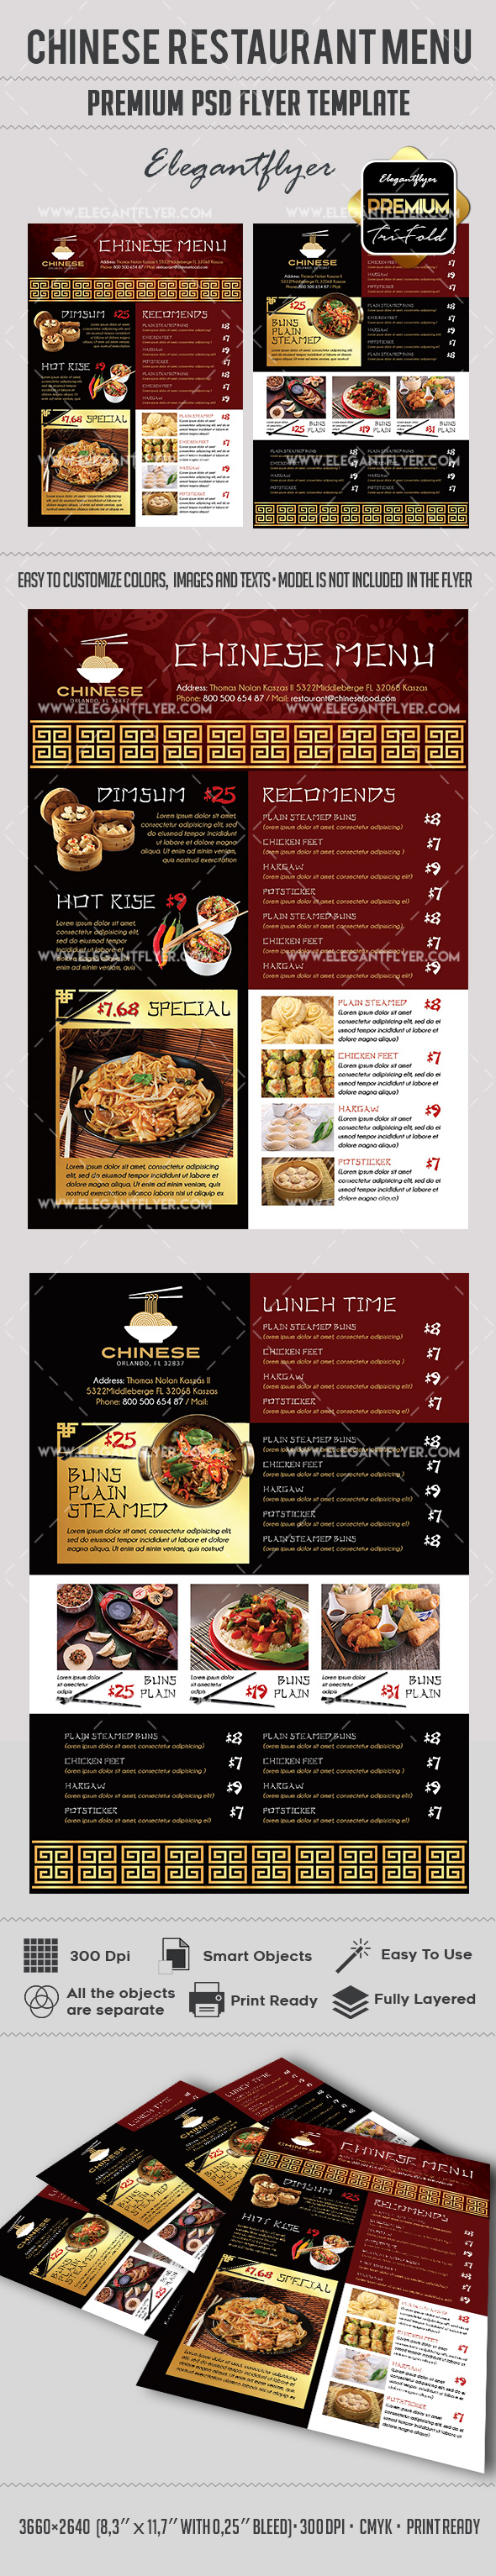 Chinese Restaurant Menu – Premium Flyer PSD Template